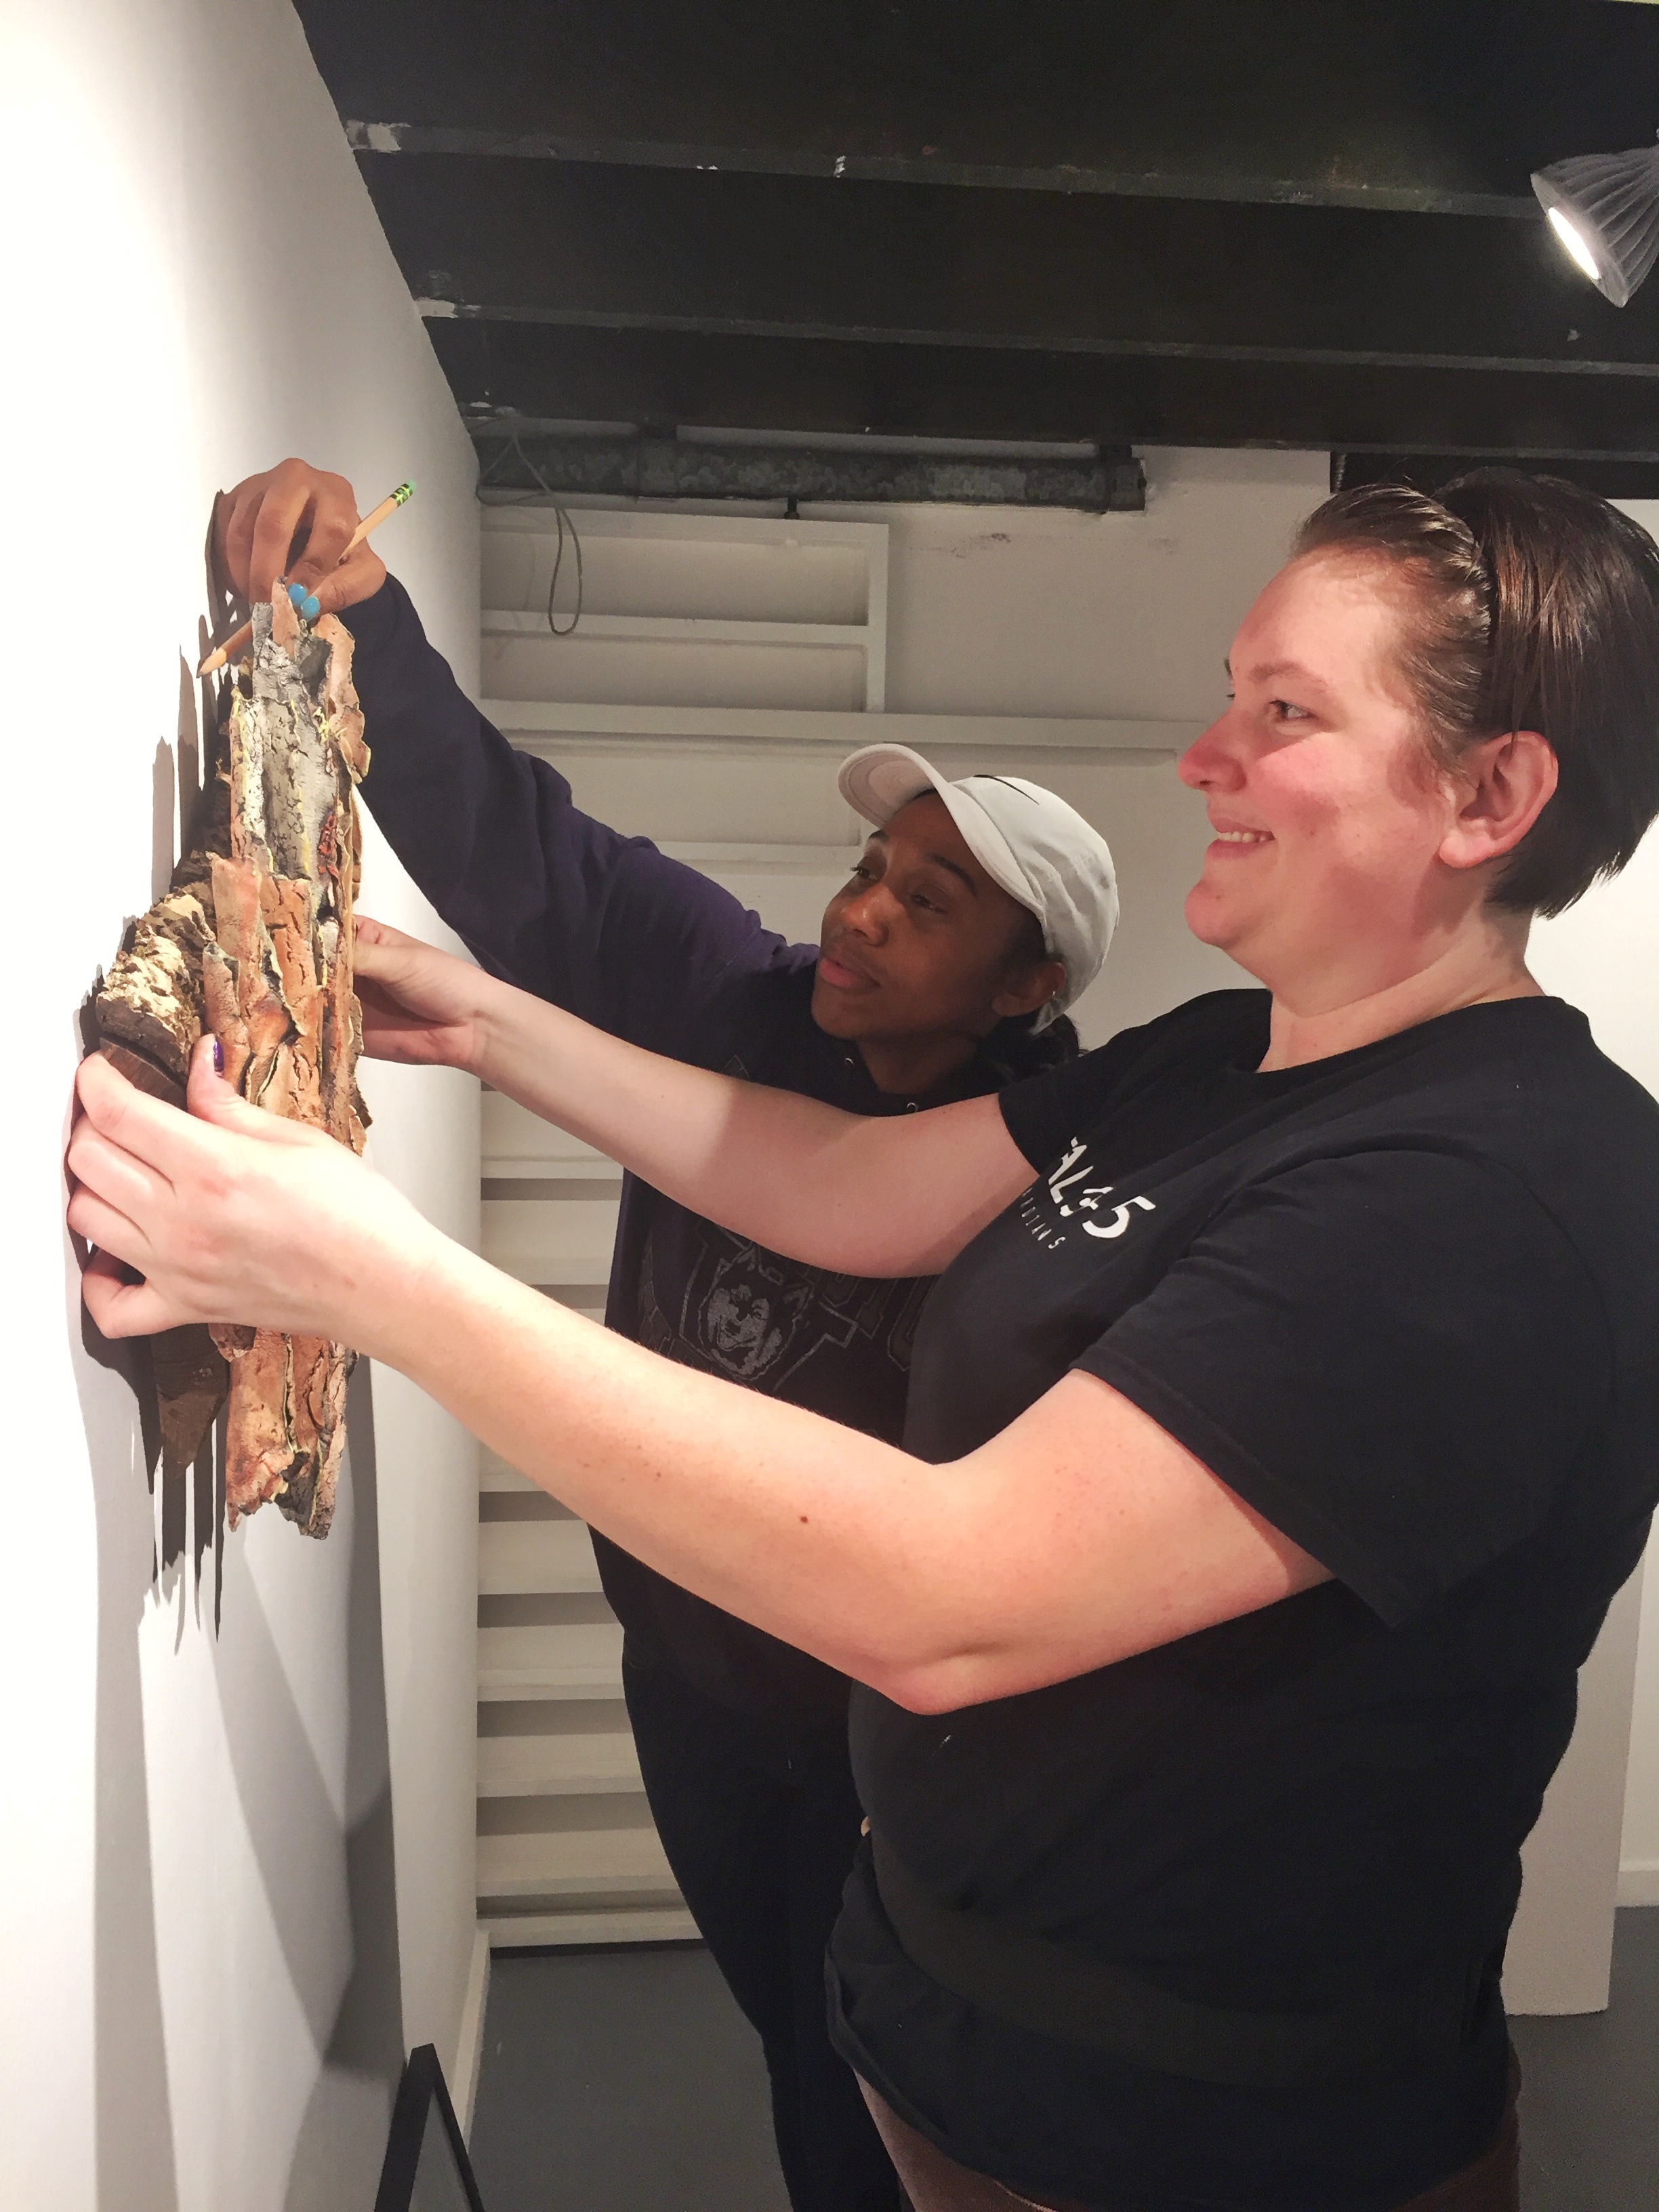 Exhibitions Program Manager Colleen Lenahan and Intern install gallery exhibit